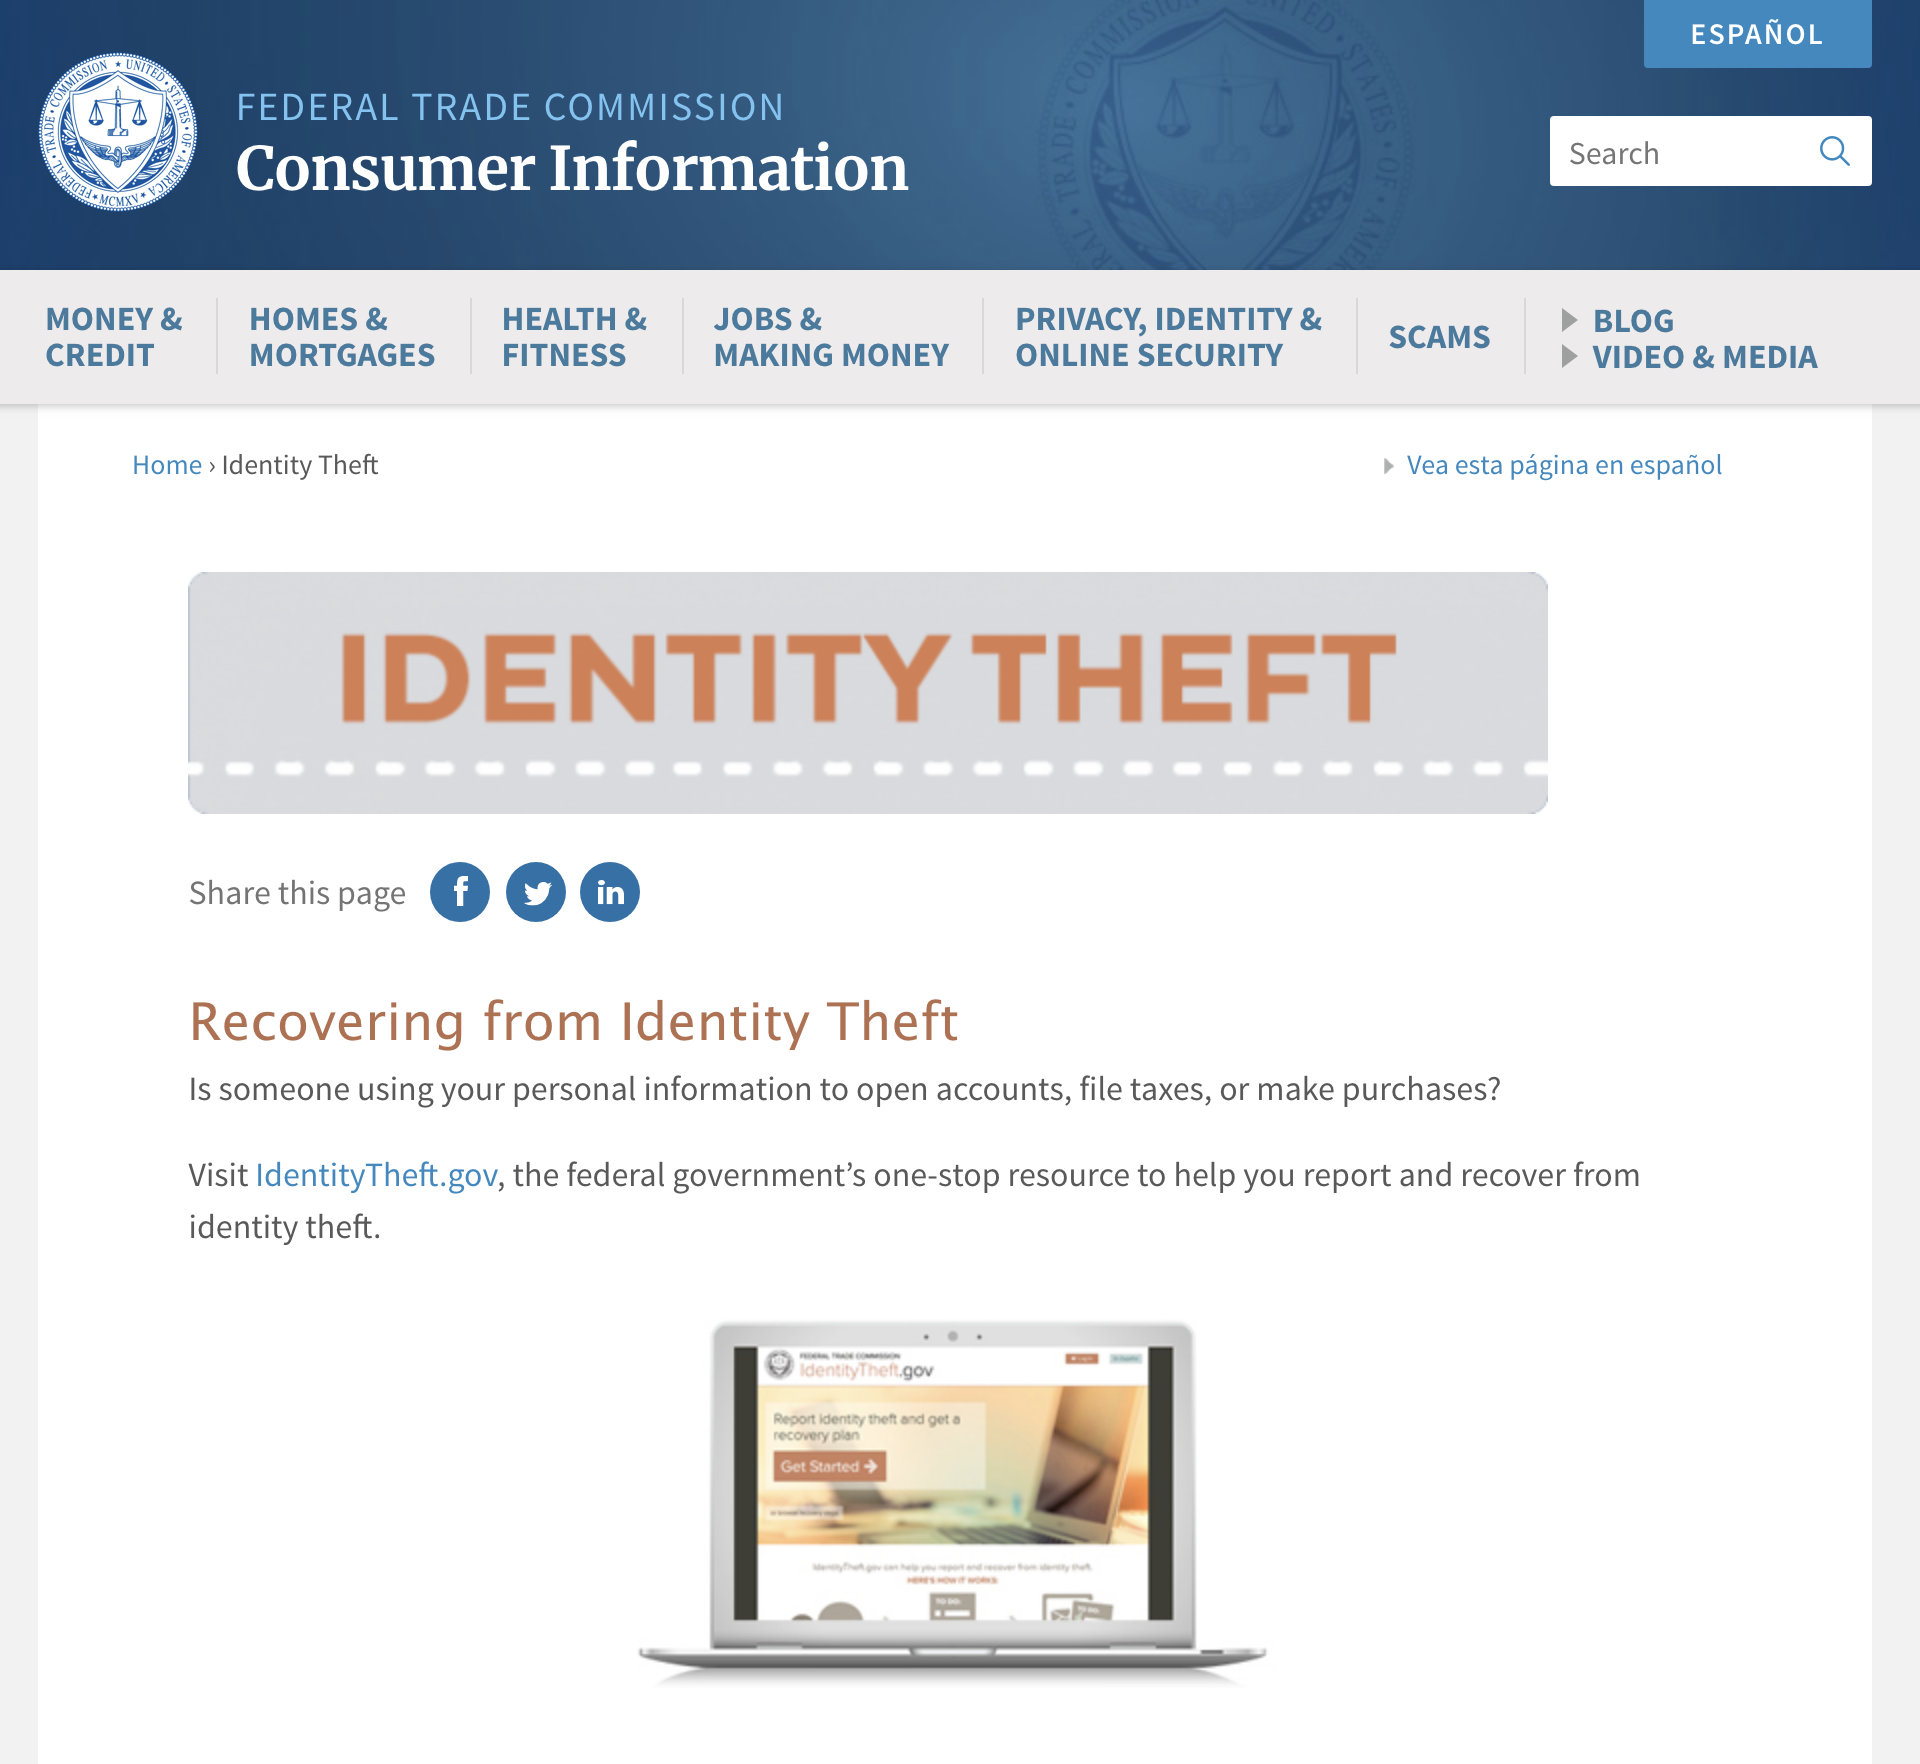 https://www.consumer.ftc.gov/features/feature-0014-identity-theft